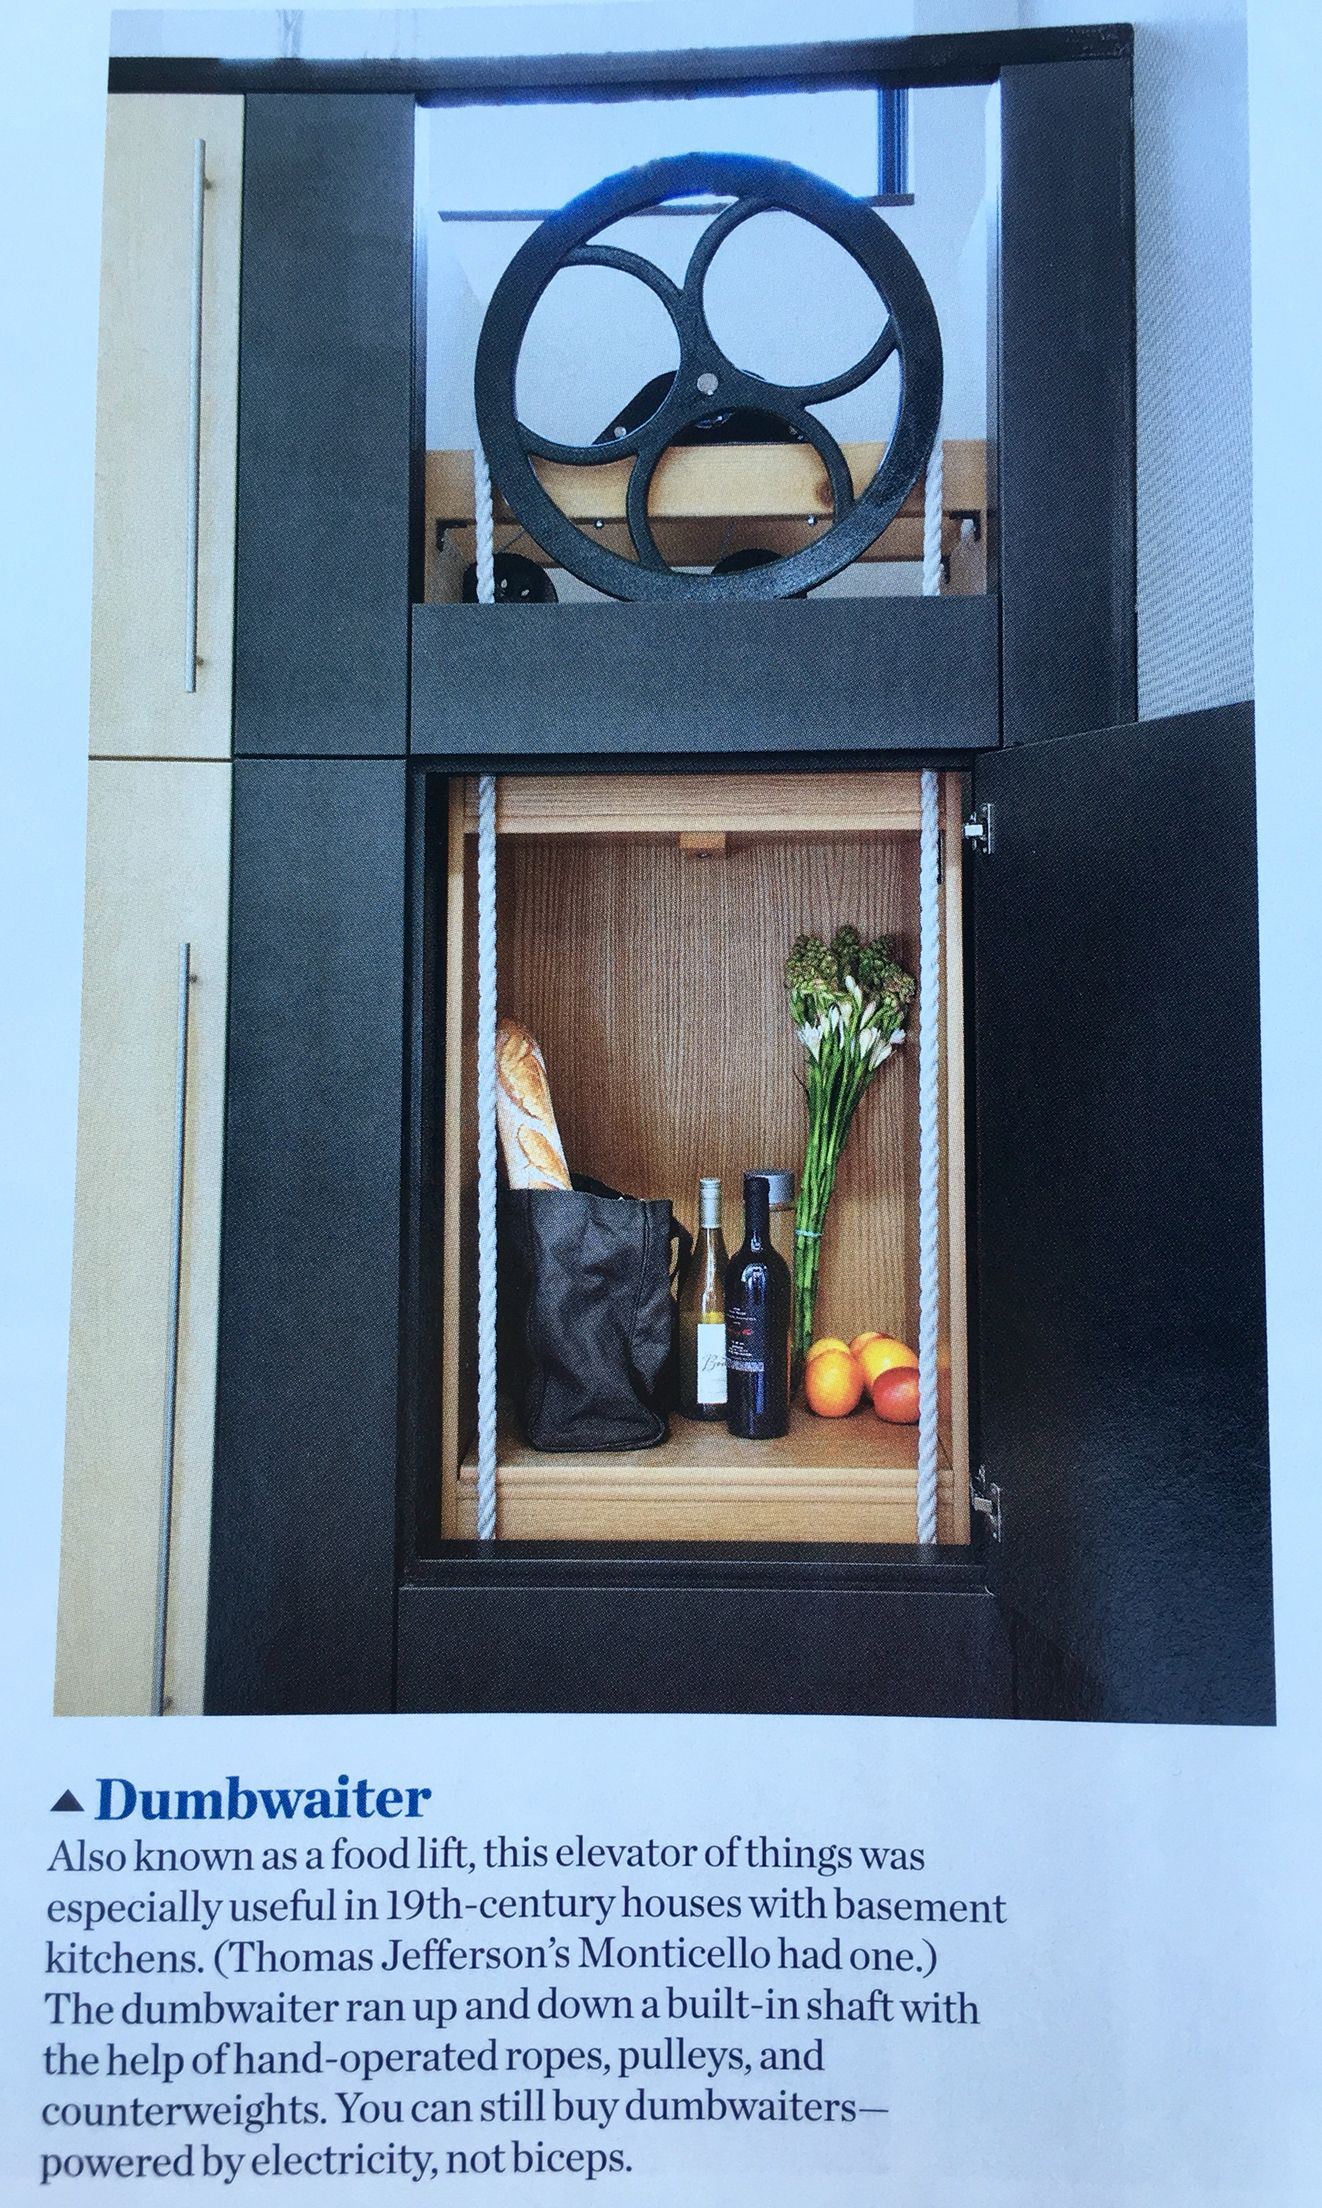 Dumbwaiter cool idea for groceries, etc. love seeing the wheel !! wonder if  we could put one of these together ?